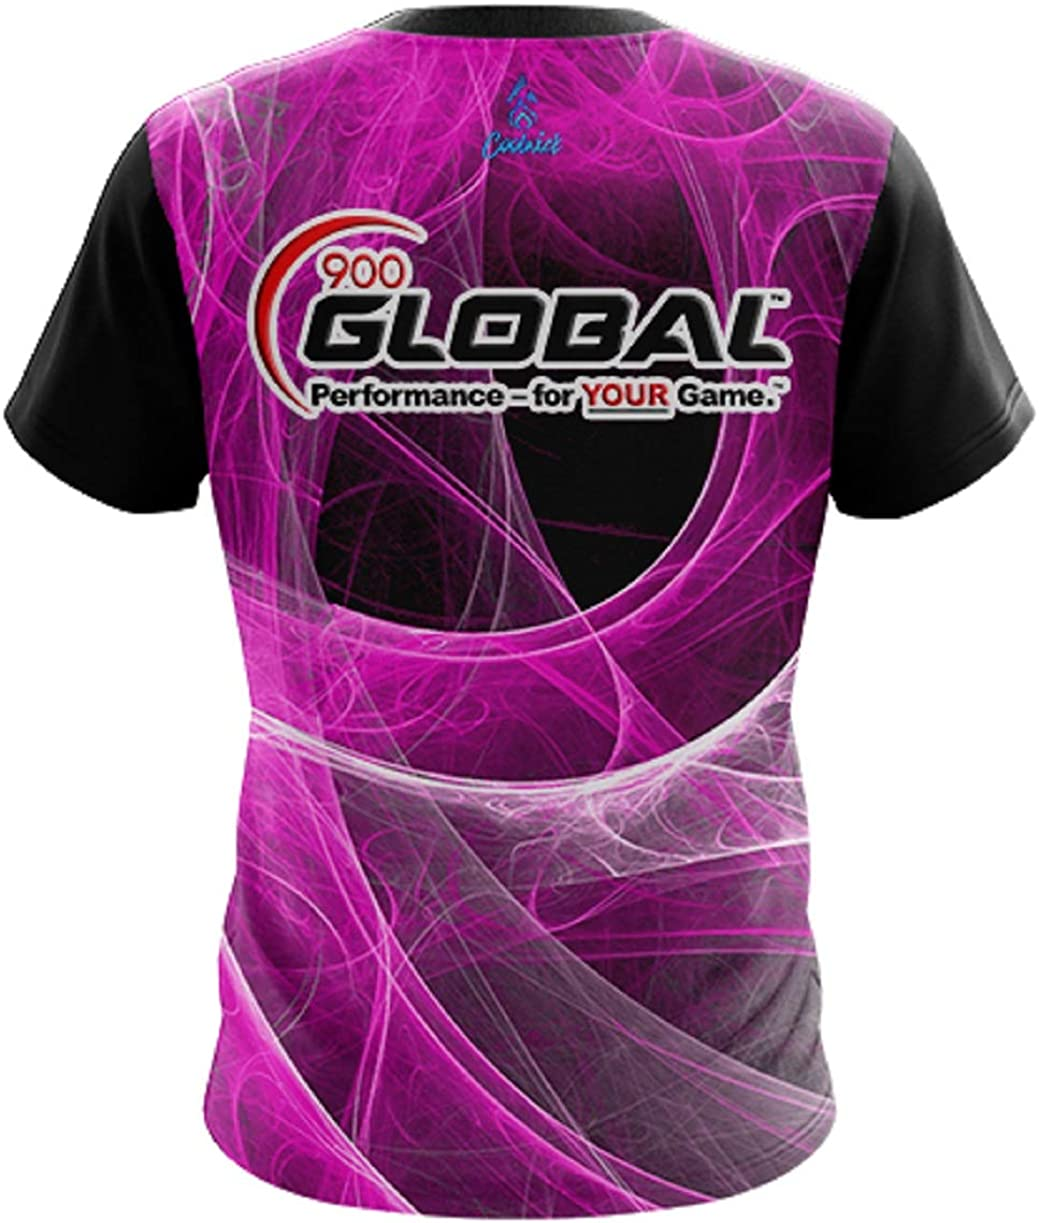 CoolWick 900 Global Mens Energy Swirls Pink Bowling Jersey